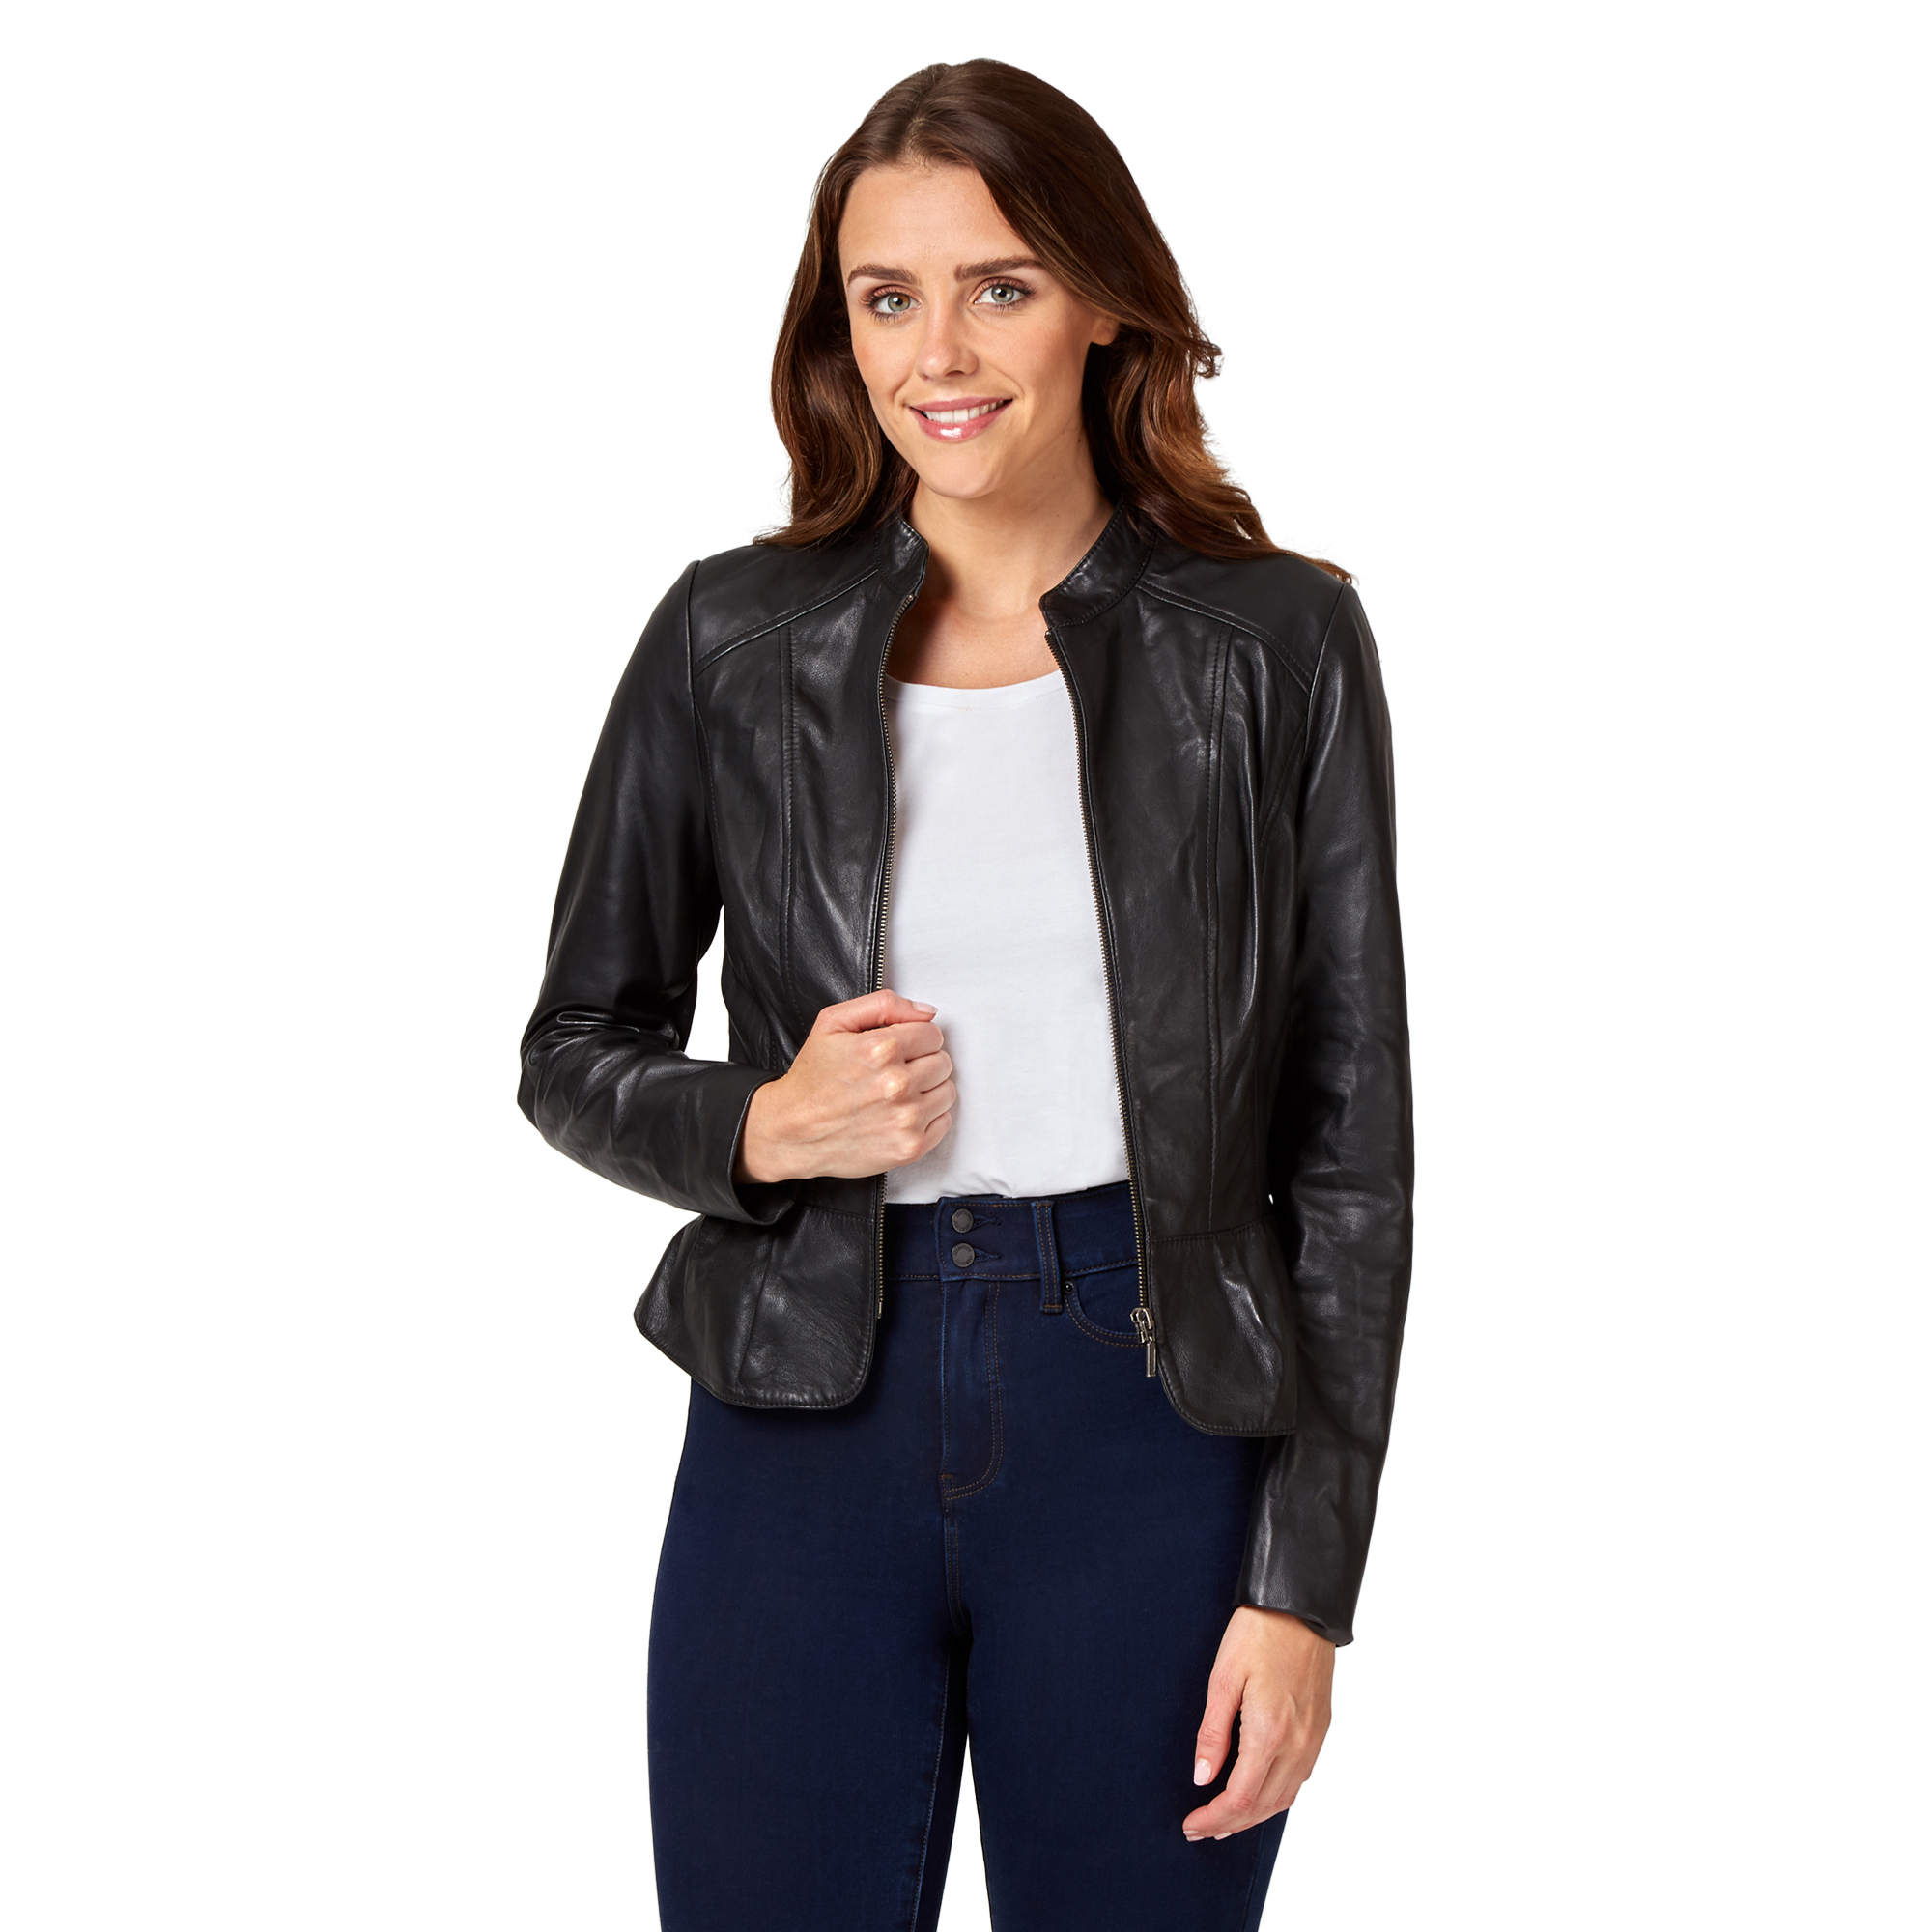 Details about NEW Jeanswest Womens Isabelle Leather Collarless Jacket Black Fashion Clothing